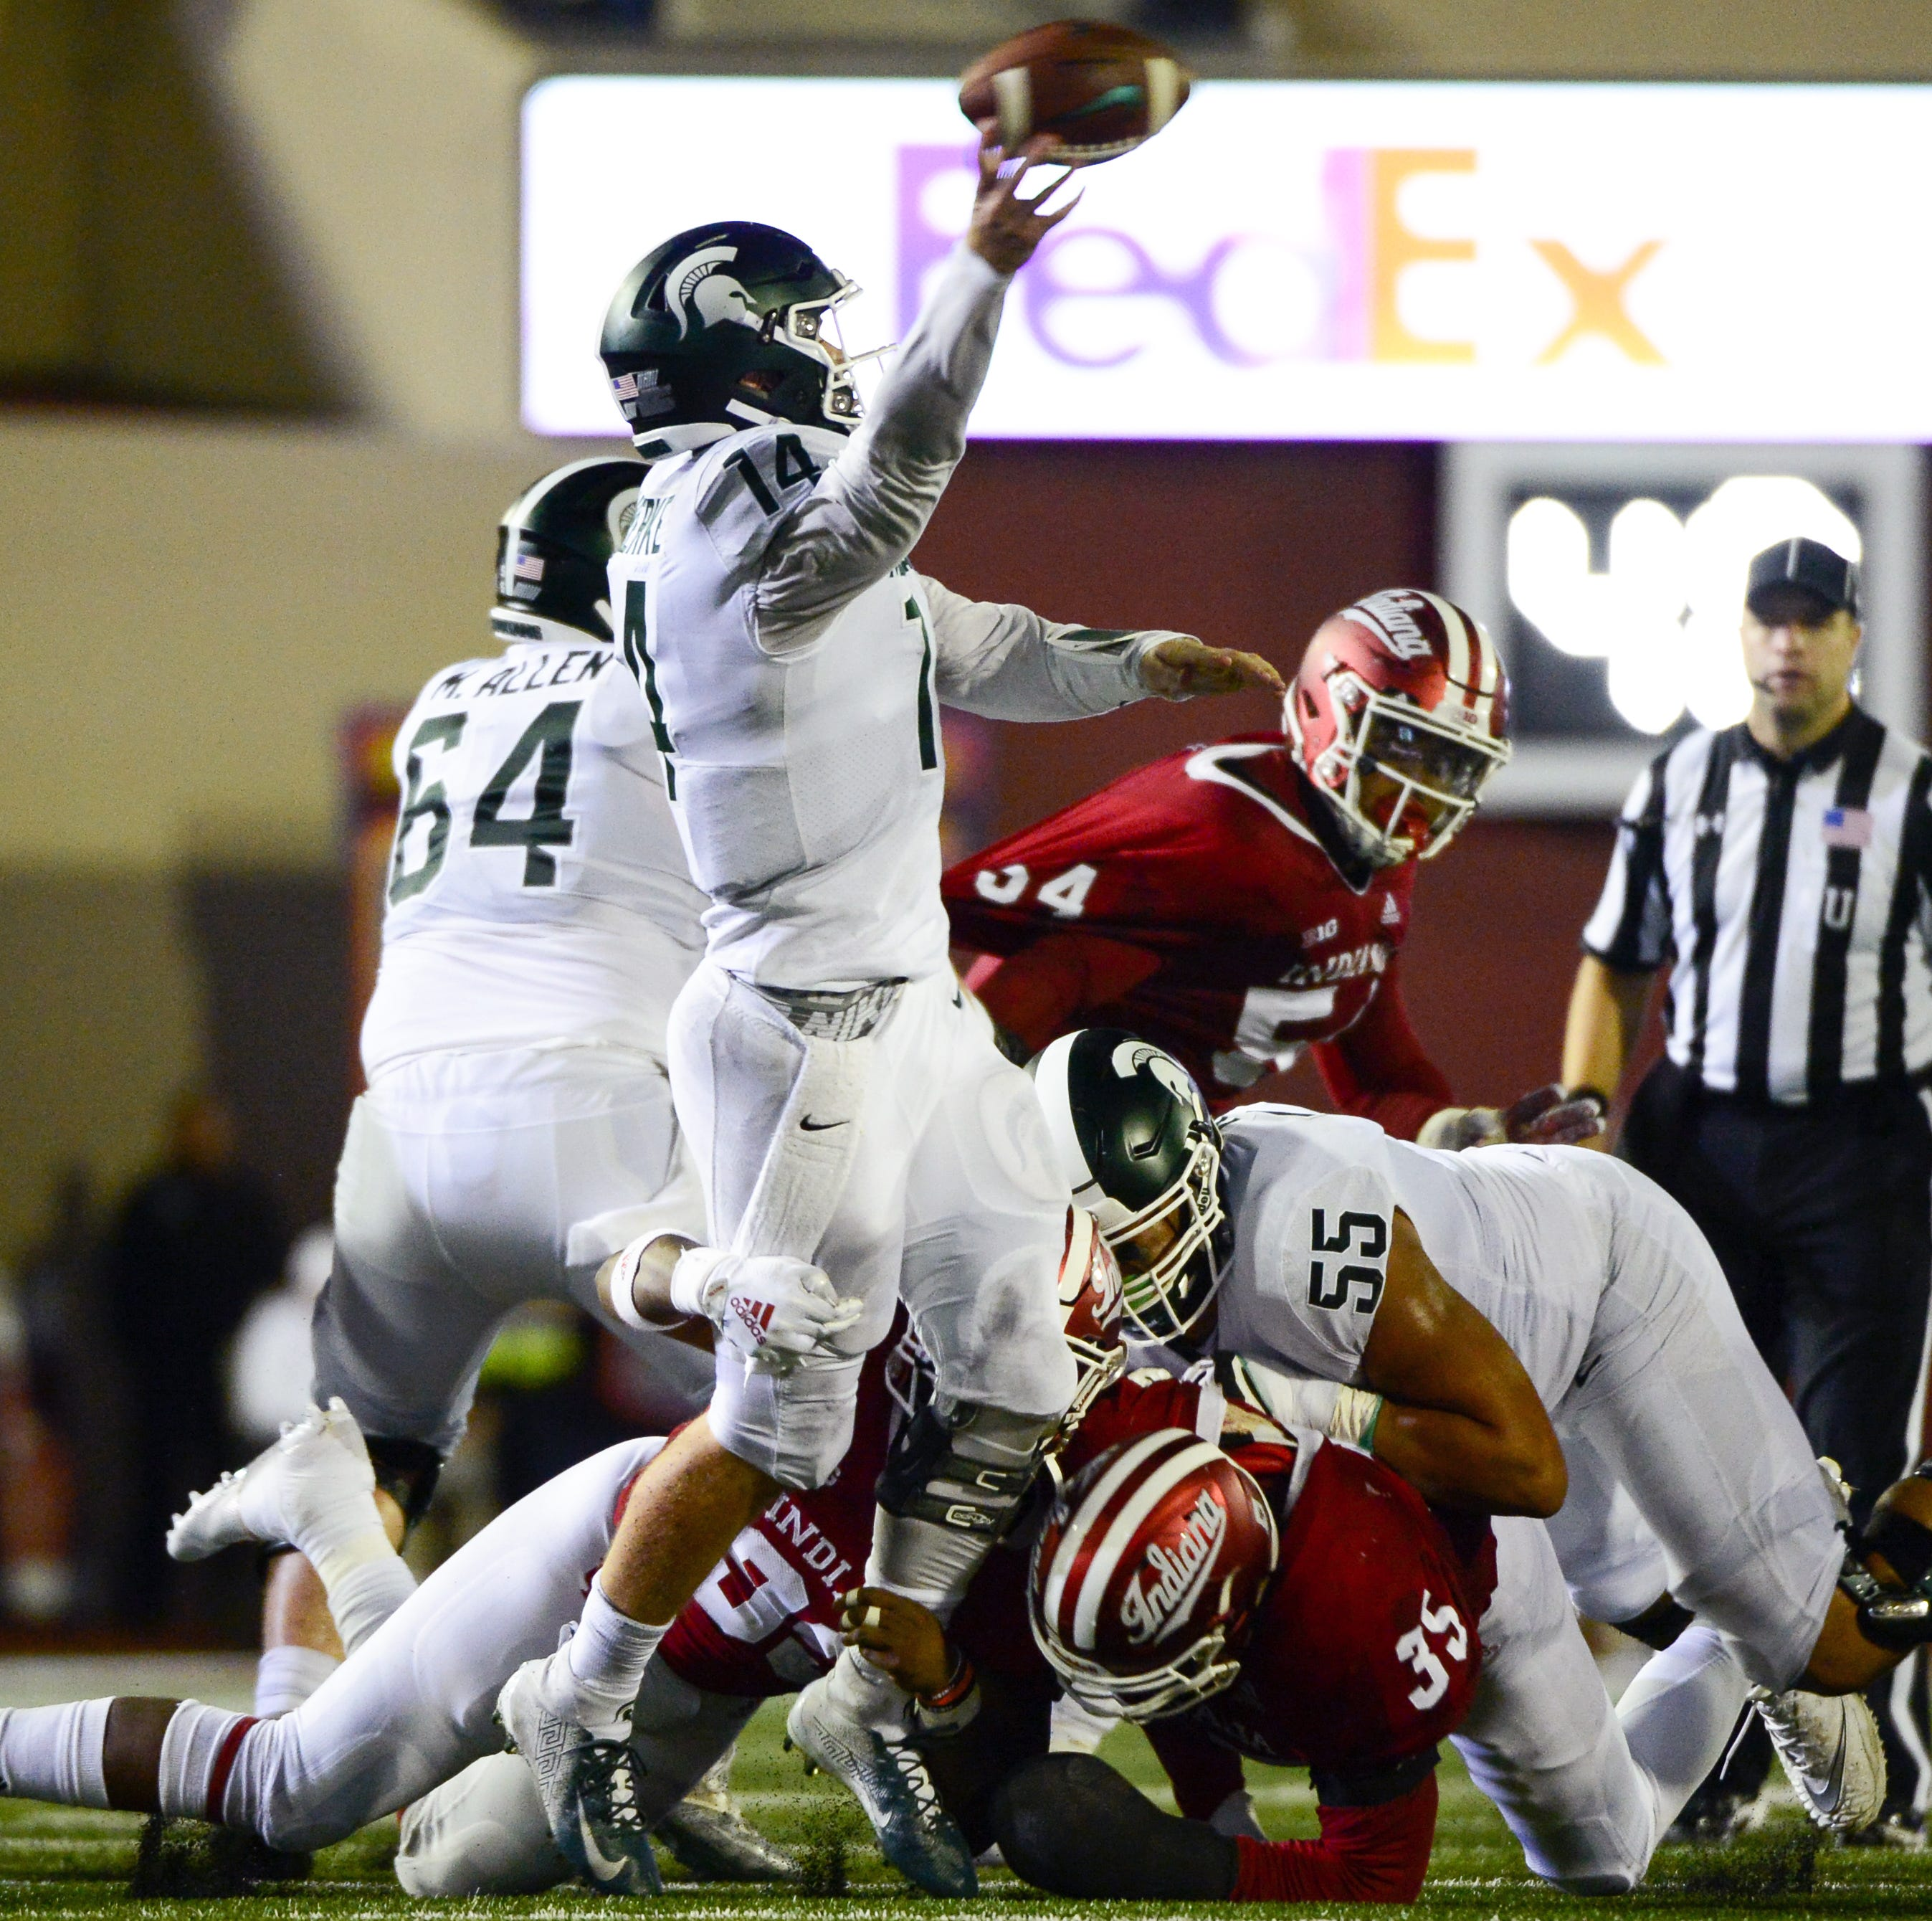 Michigan State football's run defense excelling; who'll play on OL?